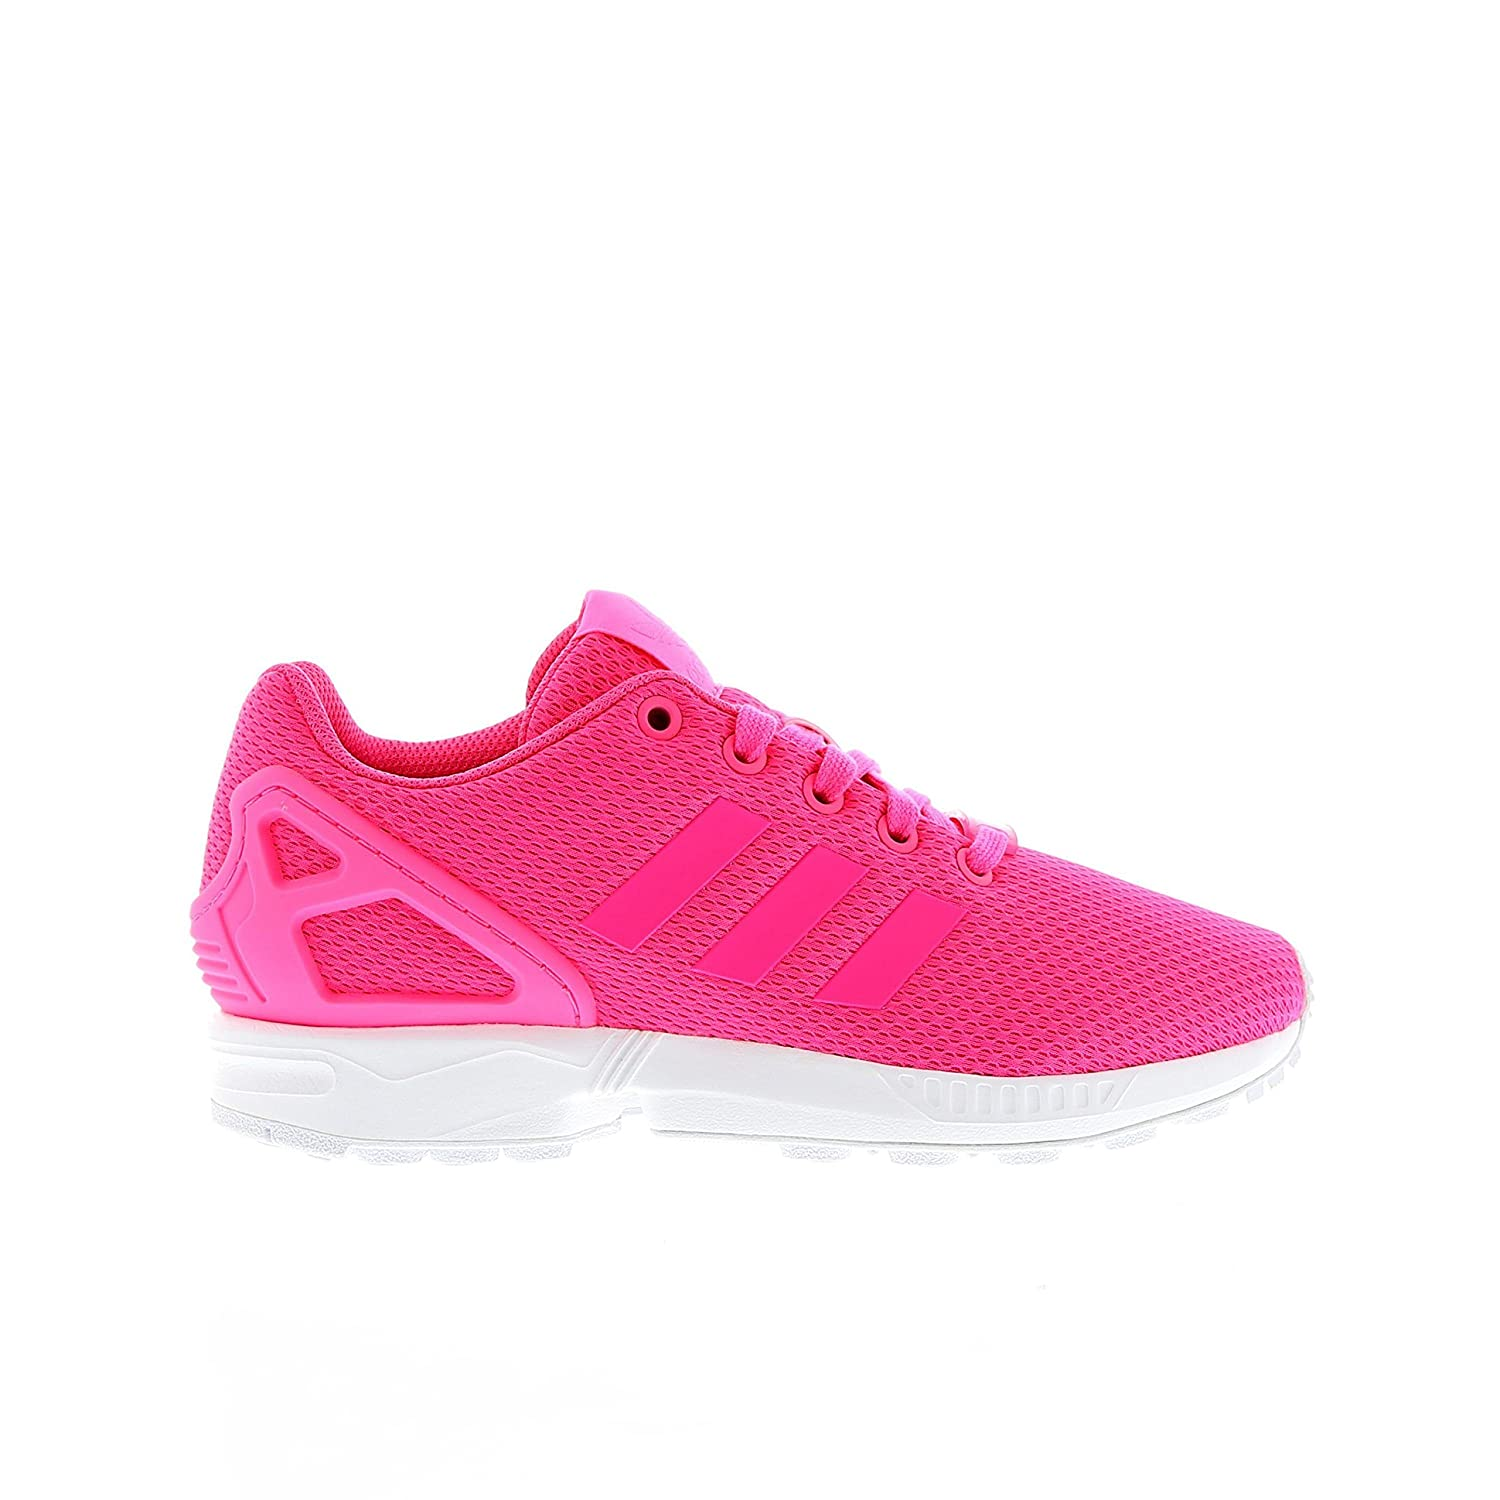 get cheap 44f22 648b0 Junior Girl Adidas ZX Flux Pink Trainers kids Sneakers ...